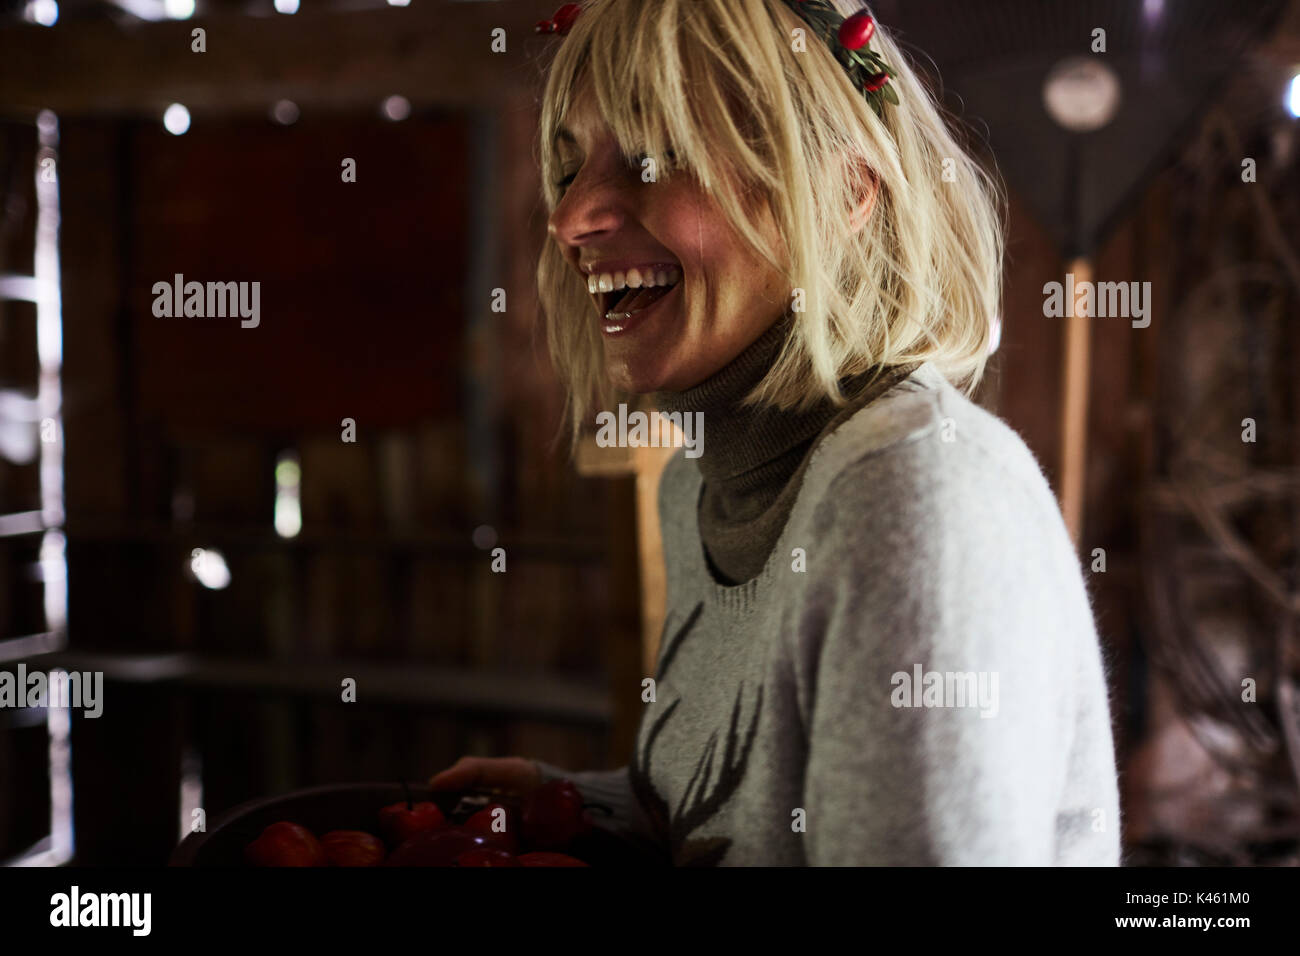 Blond woman, headdress, garland with rose hips, laugh, side view, - Stock Image